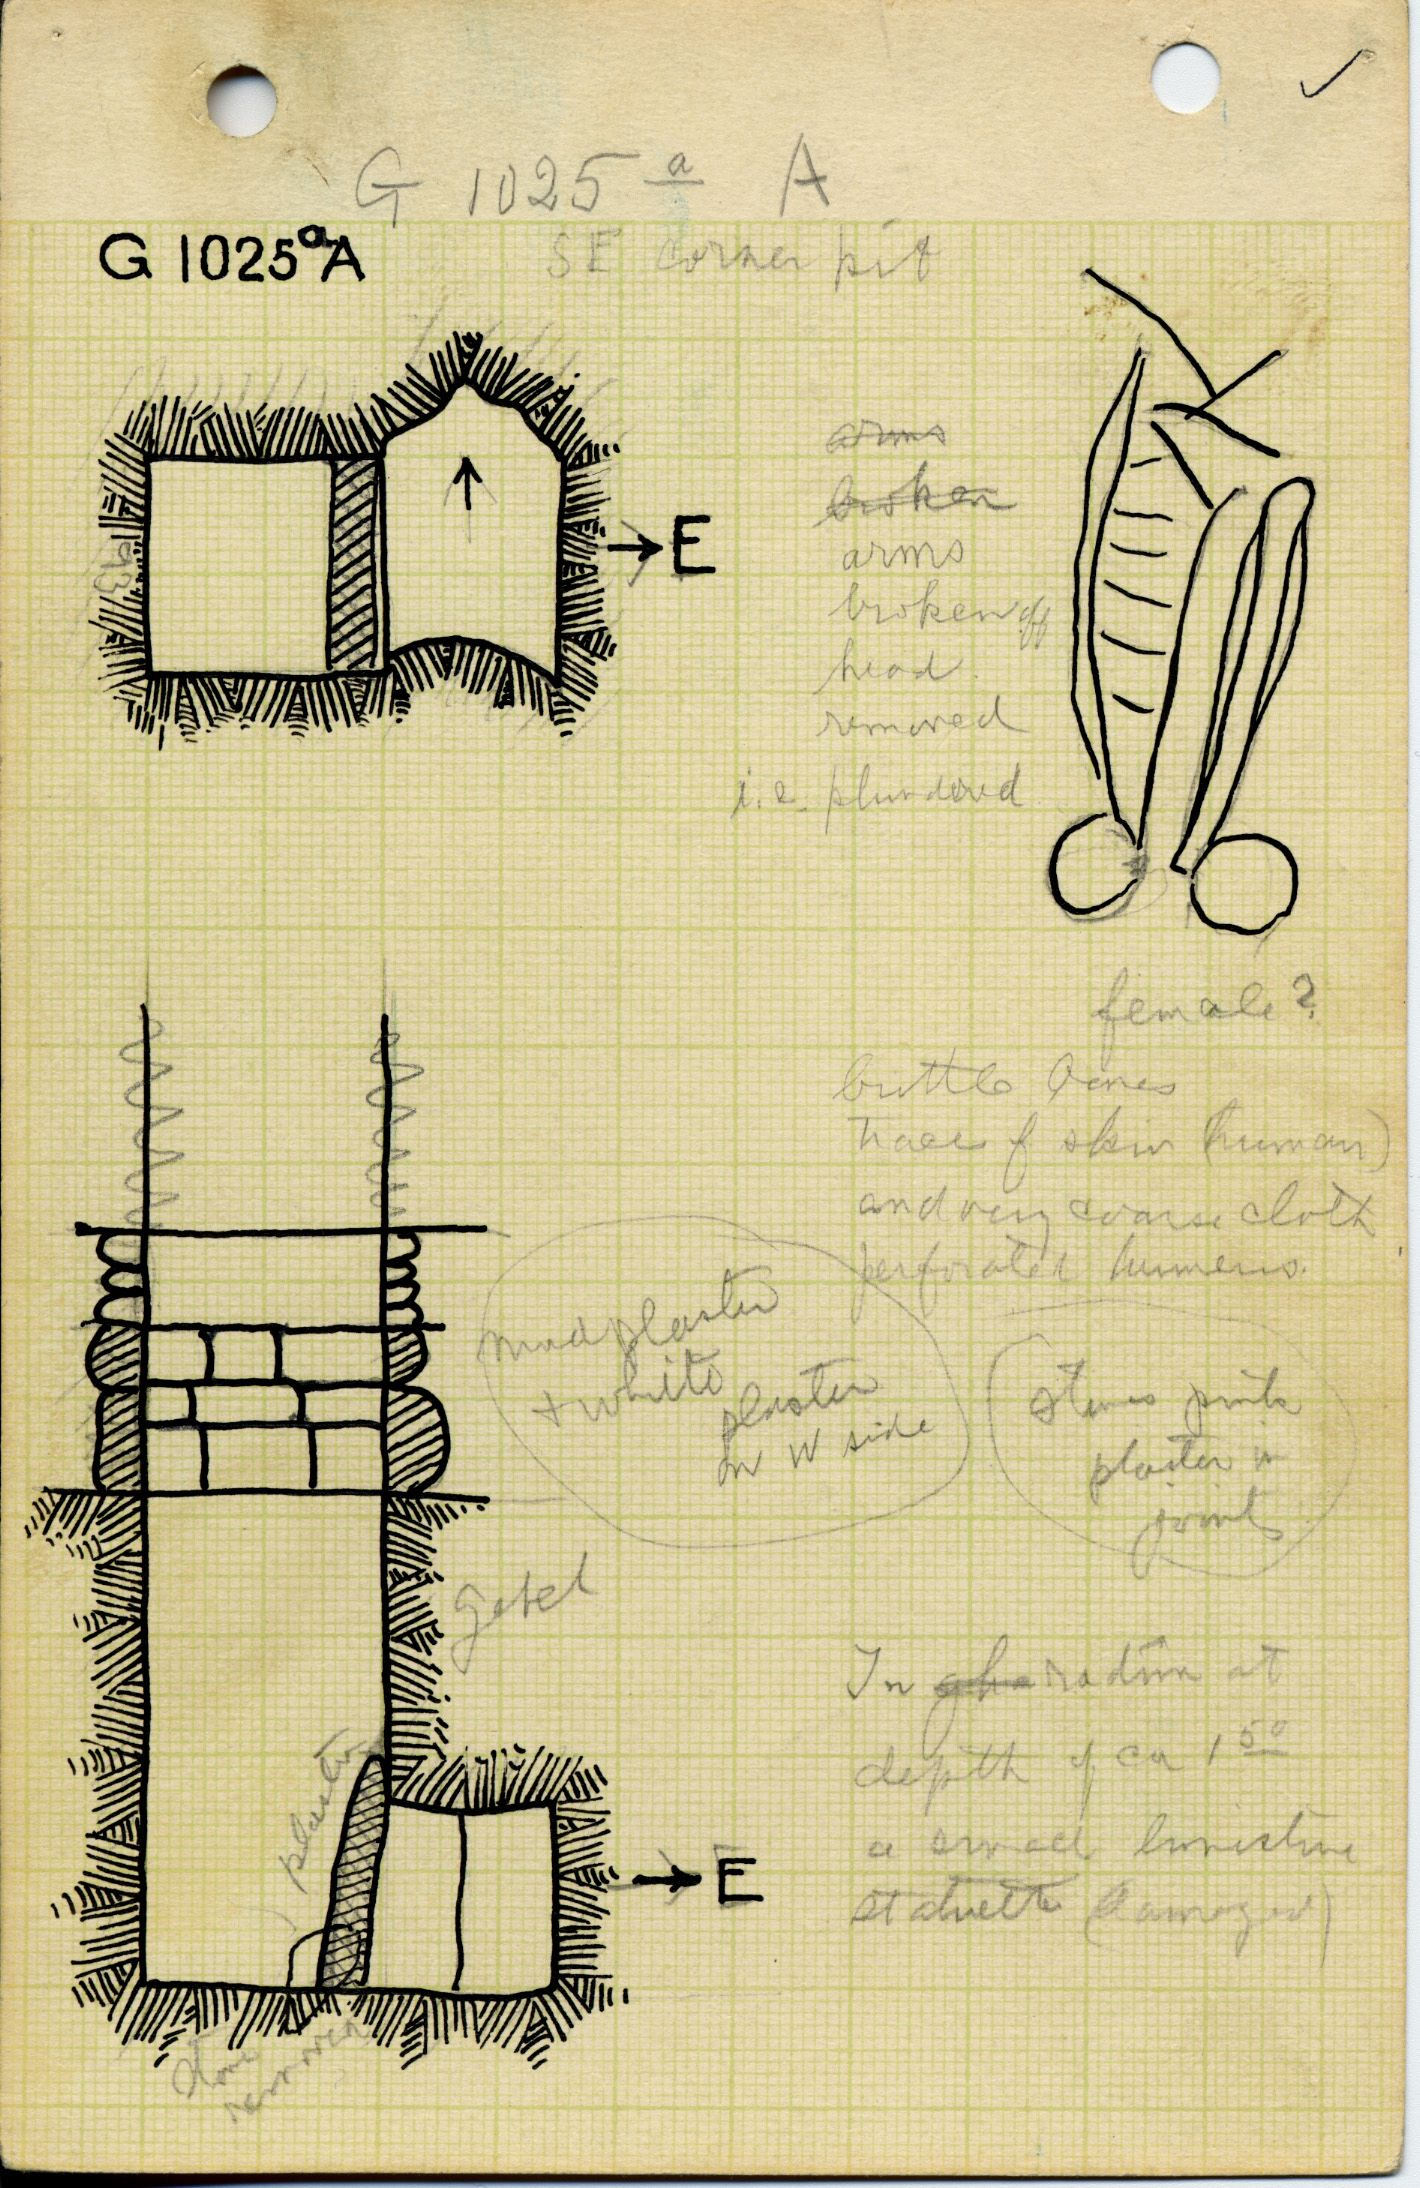 Maps and plans: G 1025a, Shaft A